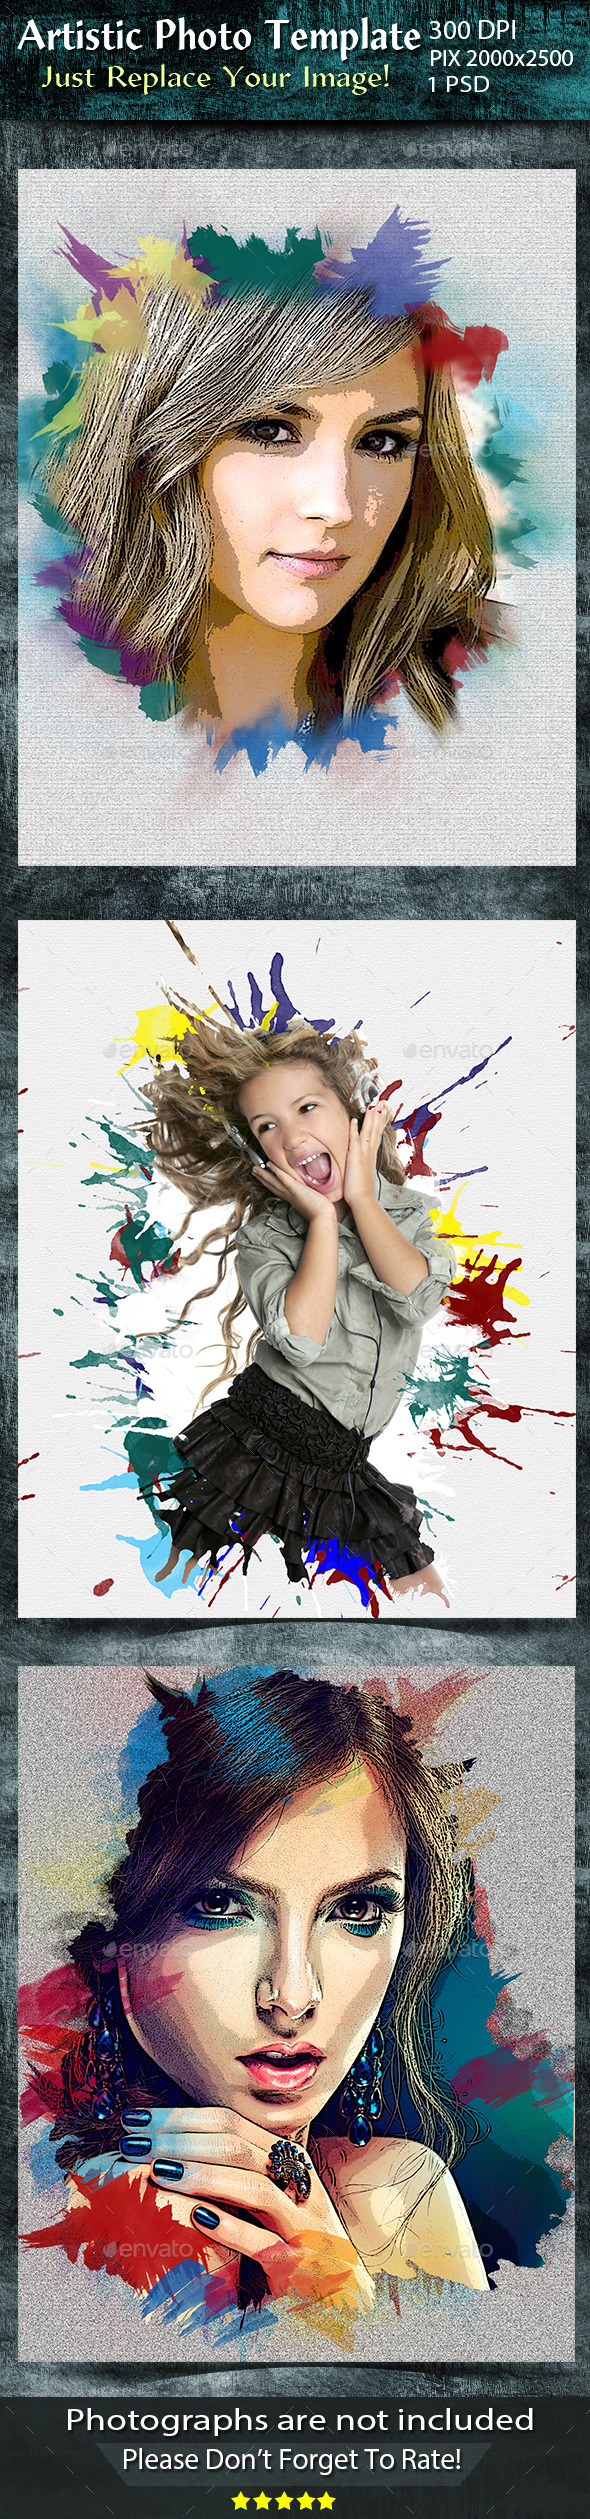 Artistic Photo Manipulation - Artistic Photo Templates